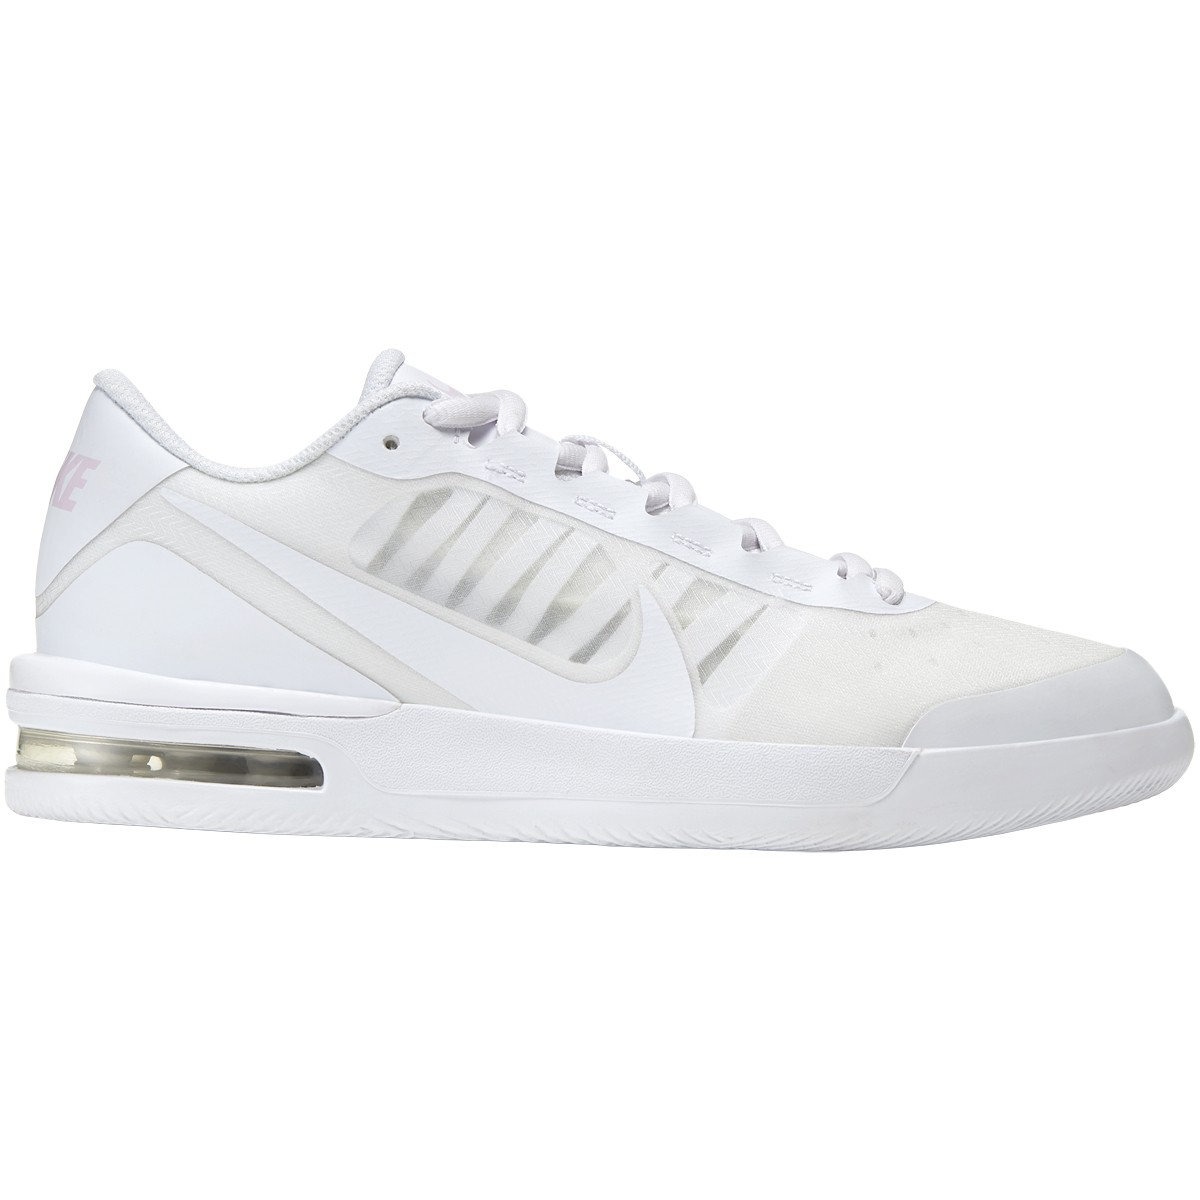 nike femme chaussures blanche